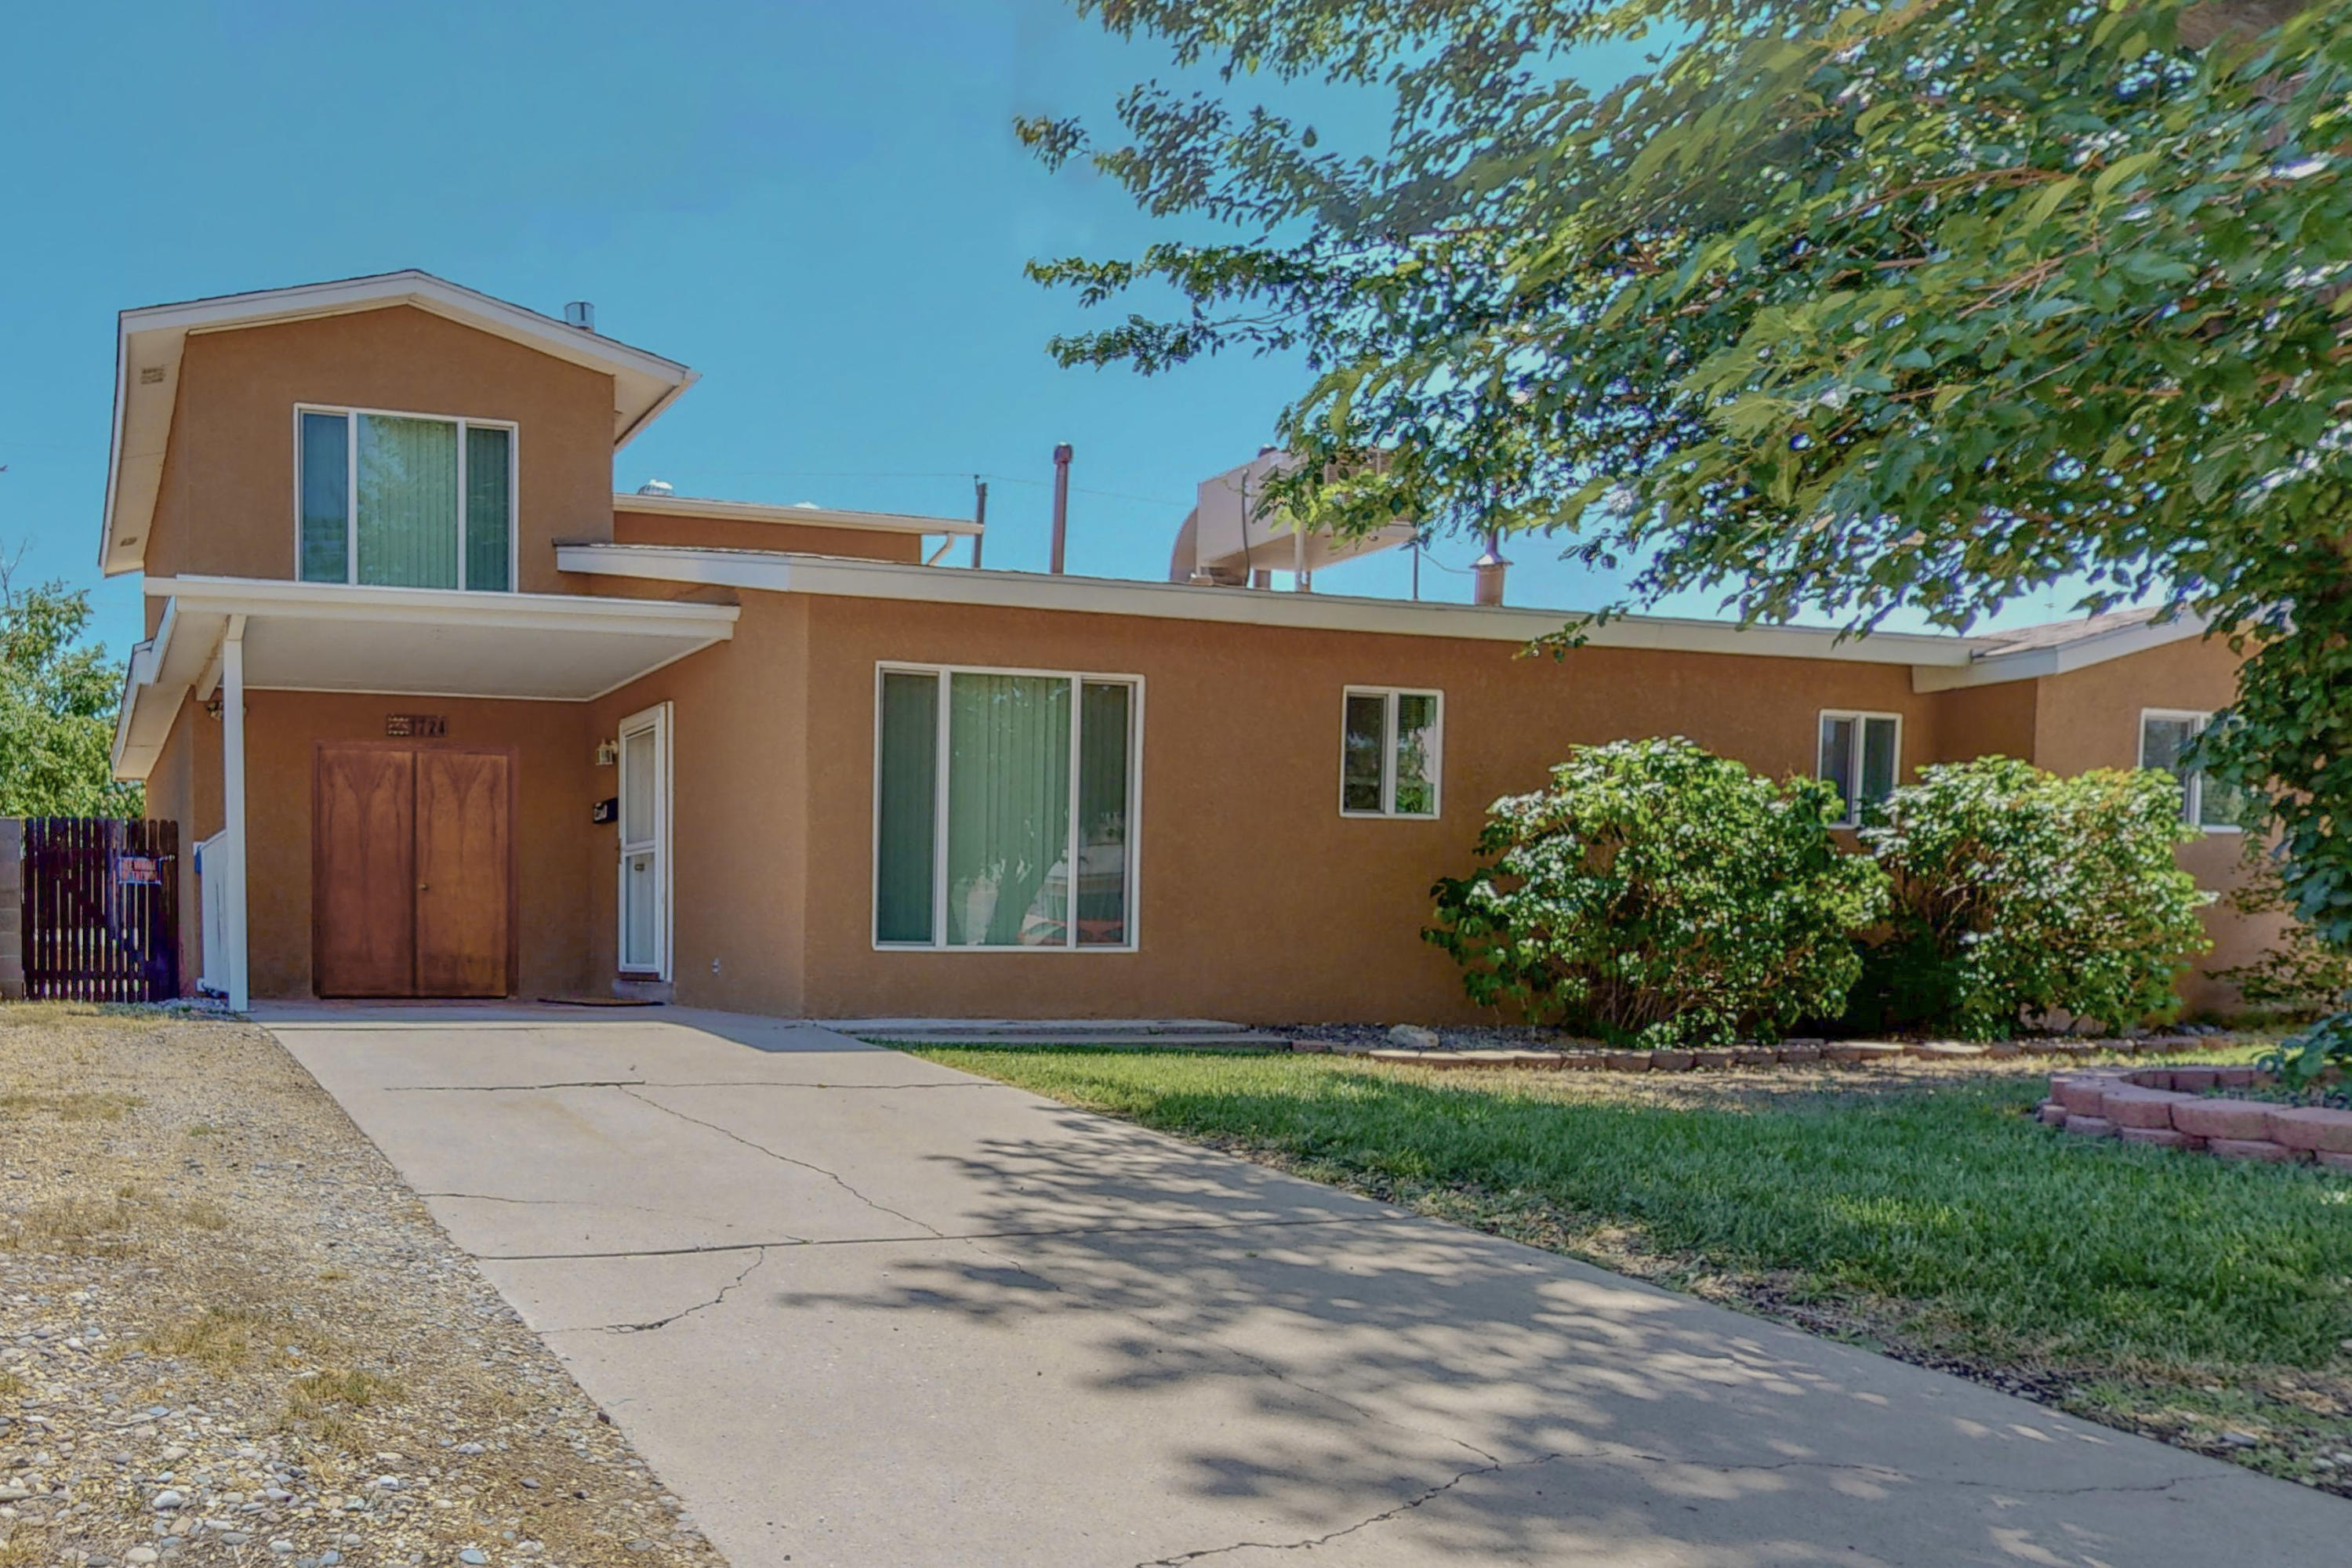 PRIDE OF OWNERSHIP!! This turn key starter home is ready for her new owners. Located close to shopping, restaurants and just 5mins away from the freeway. This home offers plenty of storage and the large bonus room upstairs with mountain views can be used as a 4th bedroom, entertainment room, art studio, office, great for a home business or anything of your imagination.  Some updates on this home include: gas fireplace (2019), evap cooler (2020), heater and water heater (2021) and the roof is less the 10yrs old.